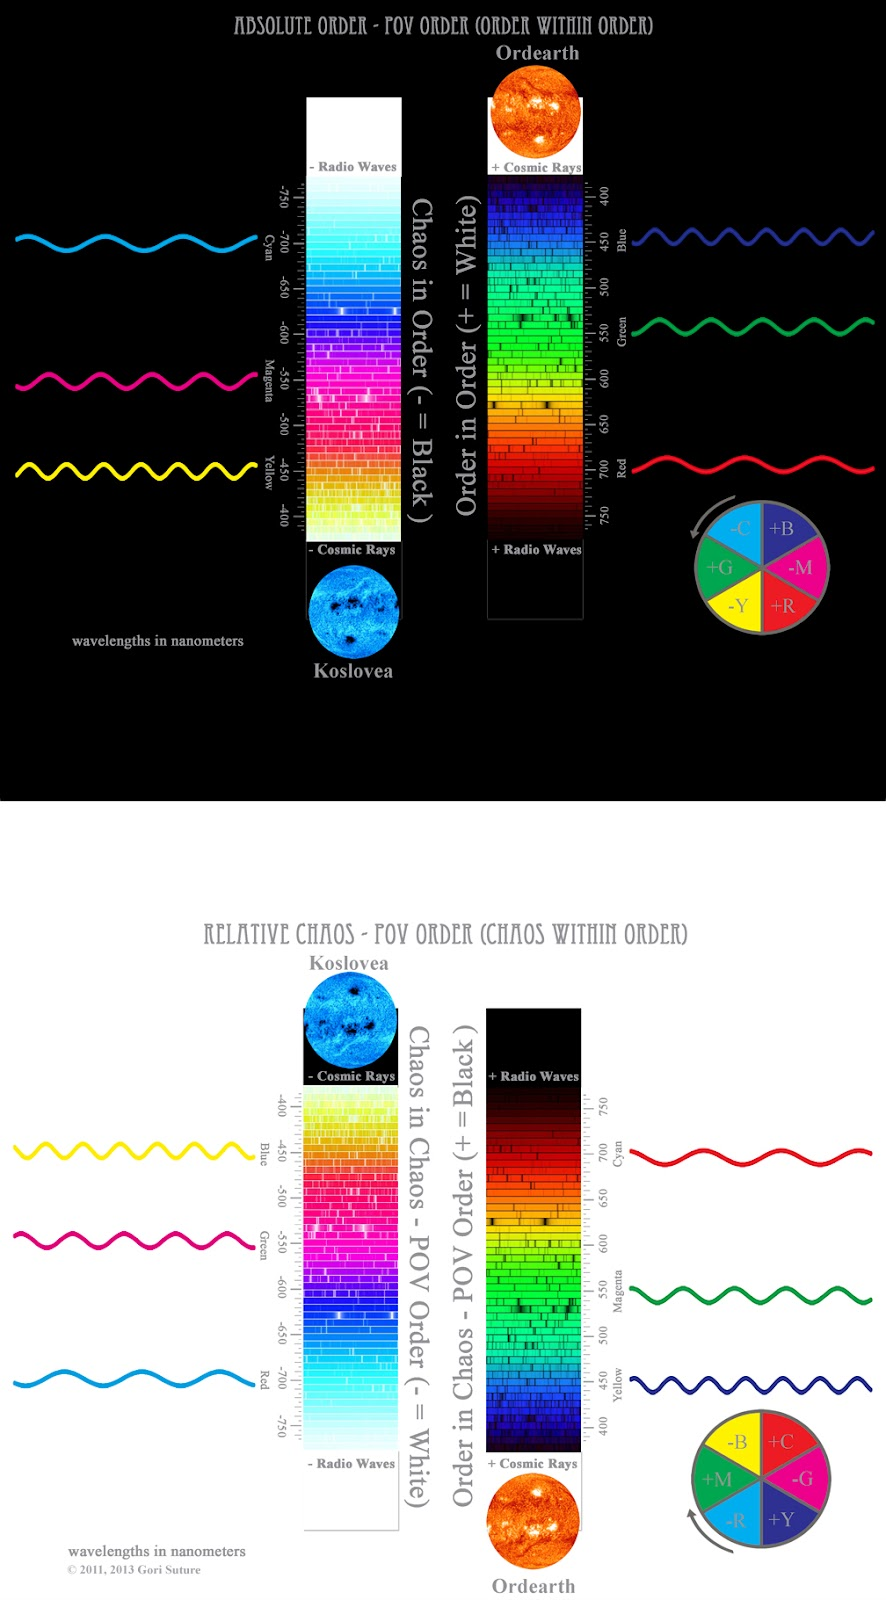 This illustration compares the wavelengths of additive light (RGB), known also as order light or positive light, with the wavelengths of theoretical subtractive light (CMY), known also as chaos light or negative light.  Since this image is from the point of view of an entity made of order light, order is absolute & chaos is relative.